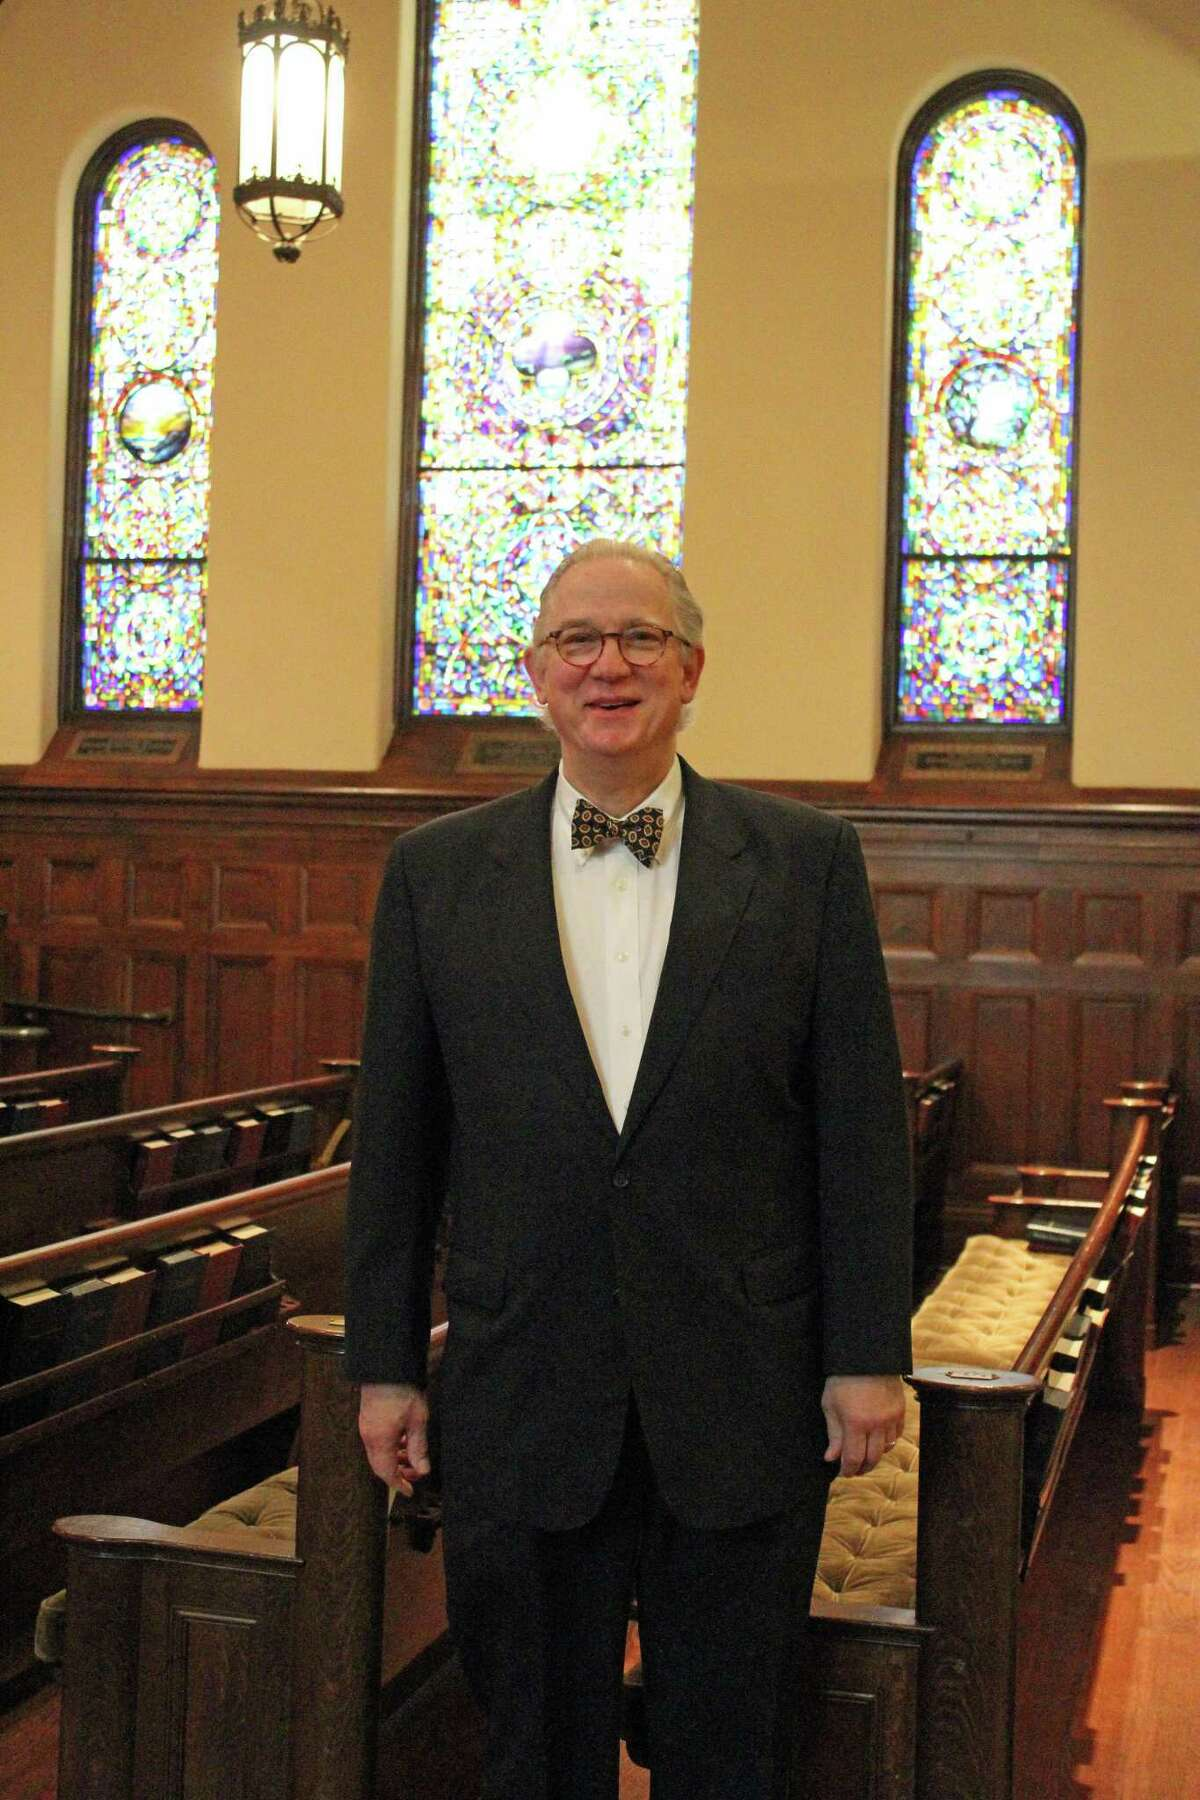 It was after he discovered a homeless man sleeping in the vestibule at First Church Congregational that the Rev. David Spollett realized there was a need in Fairfield for a homeless shelter.